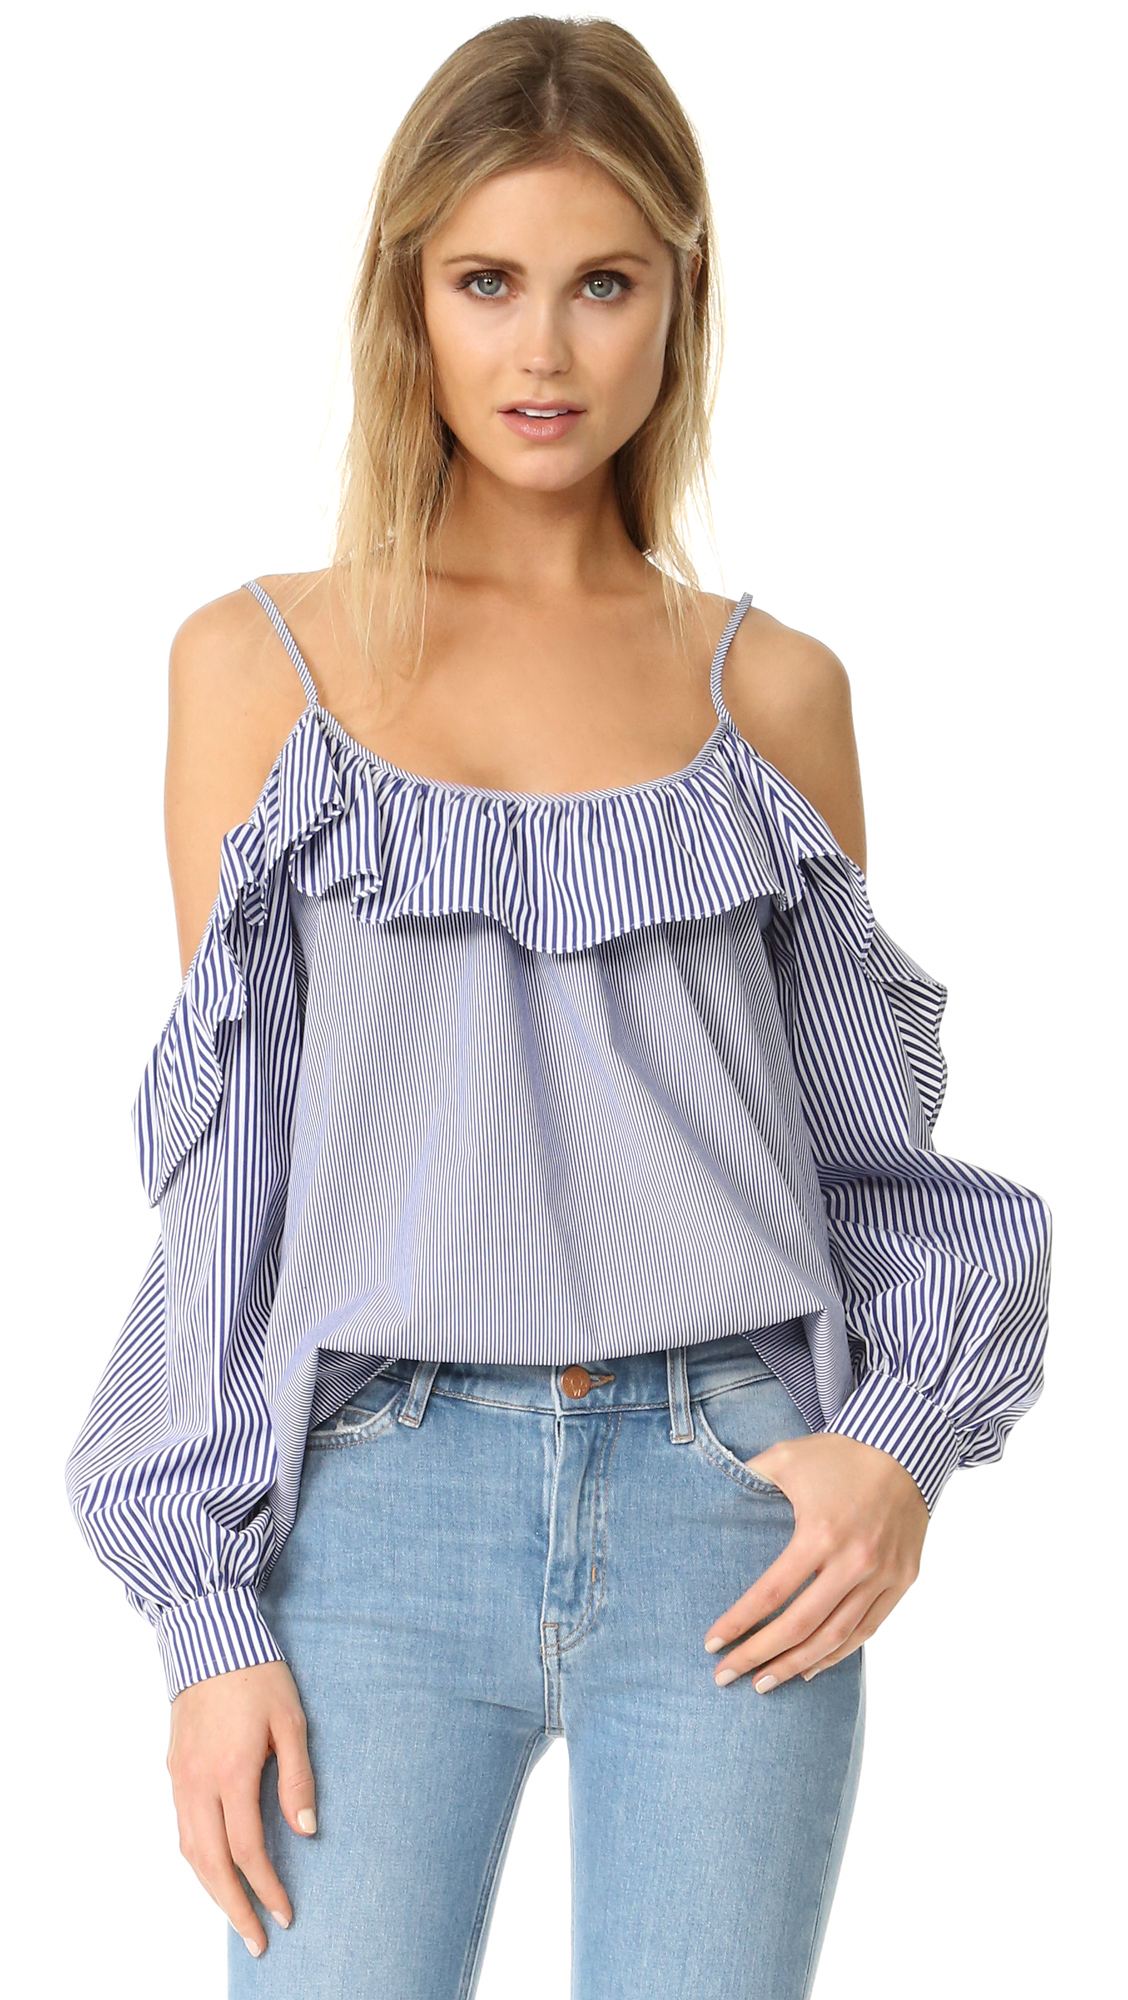 A striped, shoulder baring Parker top with a ruffled overlay at the neckline. Adjustable shoulder straps. Long sleeves and button cuffs. Fabric: Poplin. 100% cotton. Dry clean. Imported, China. Measurements Length: 26in / 66cm, from shoulder Measurements from